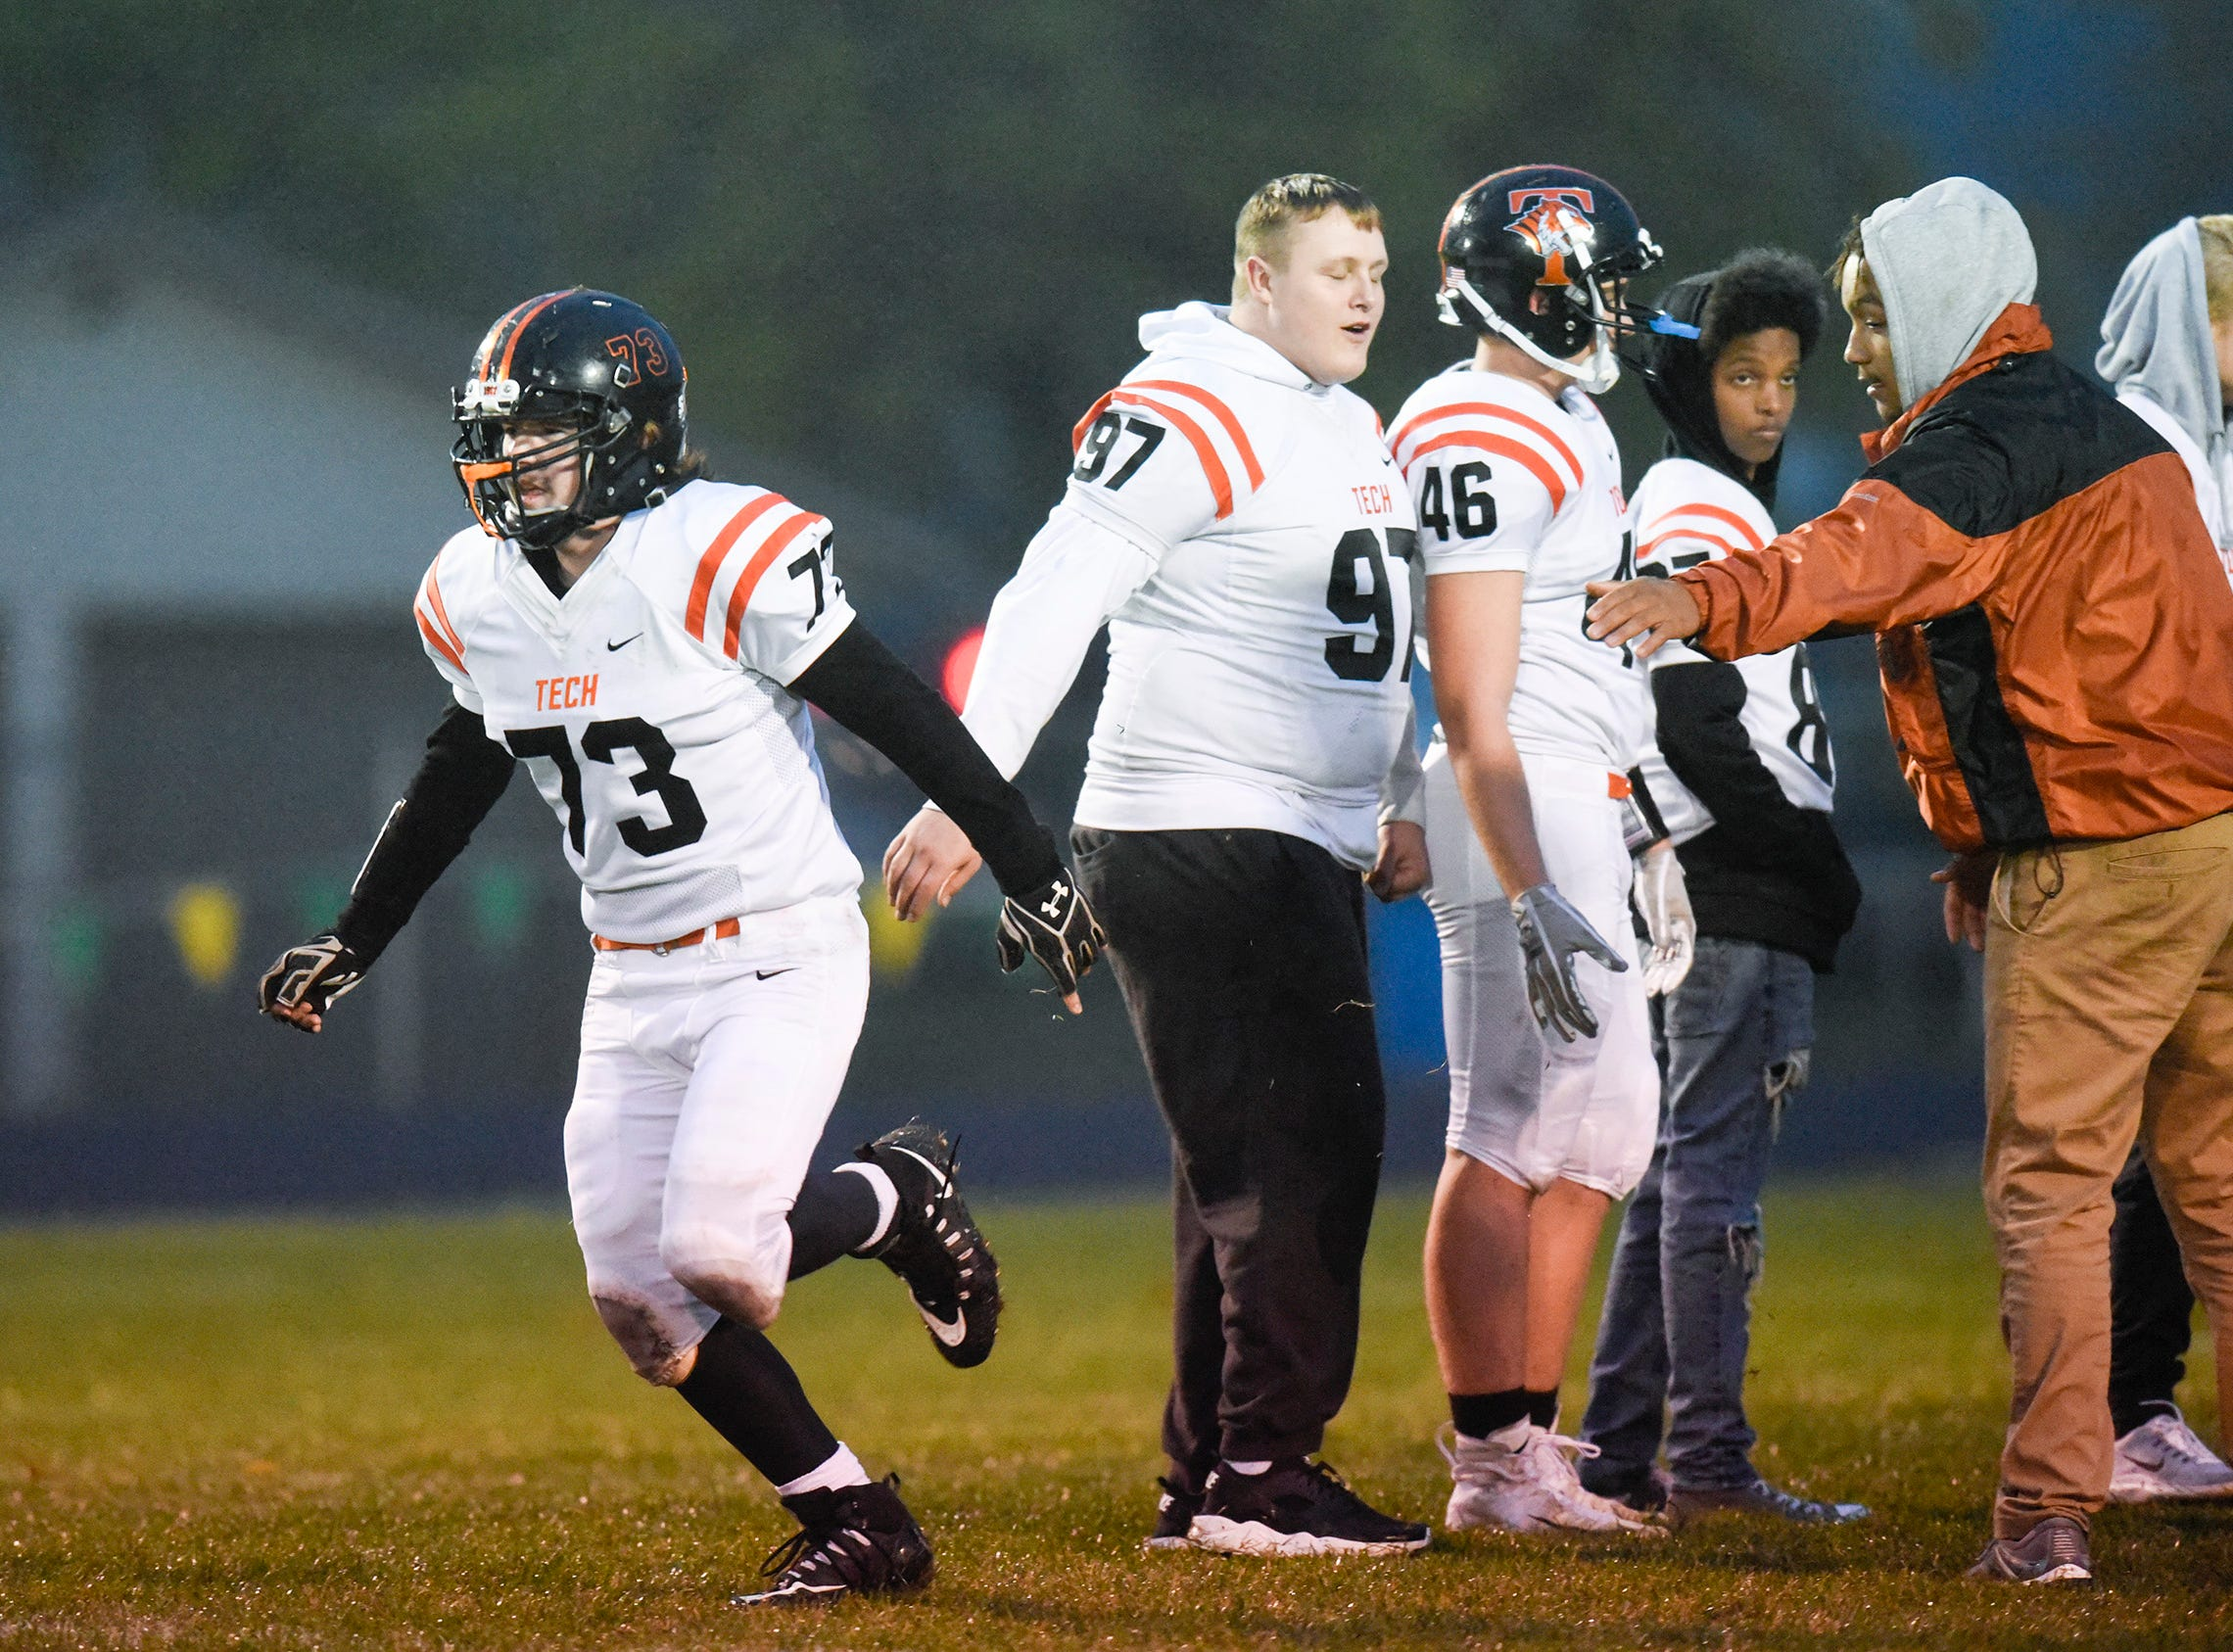 Tech's Austin Applegate is introduced before the start of the game Friday, Oct. 5, in Sauk Rapids.